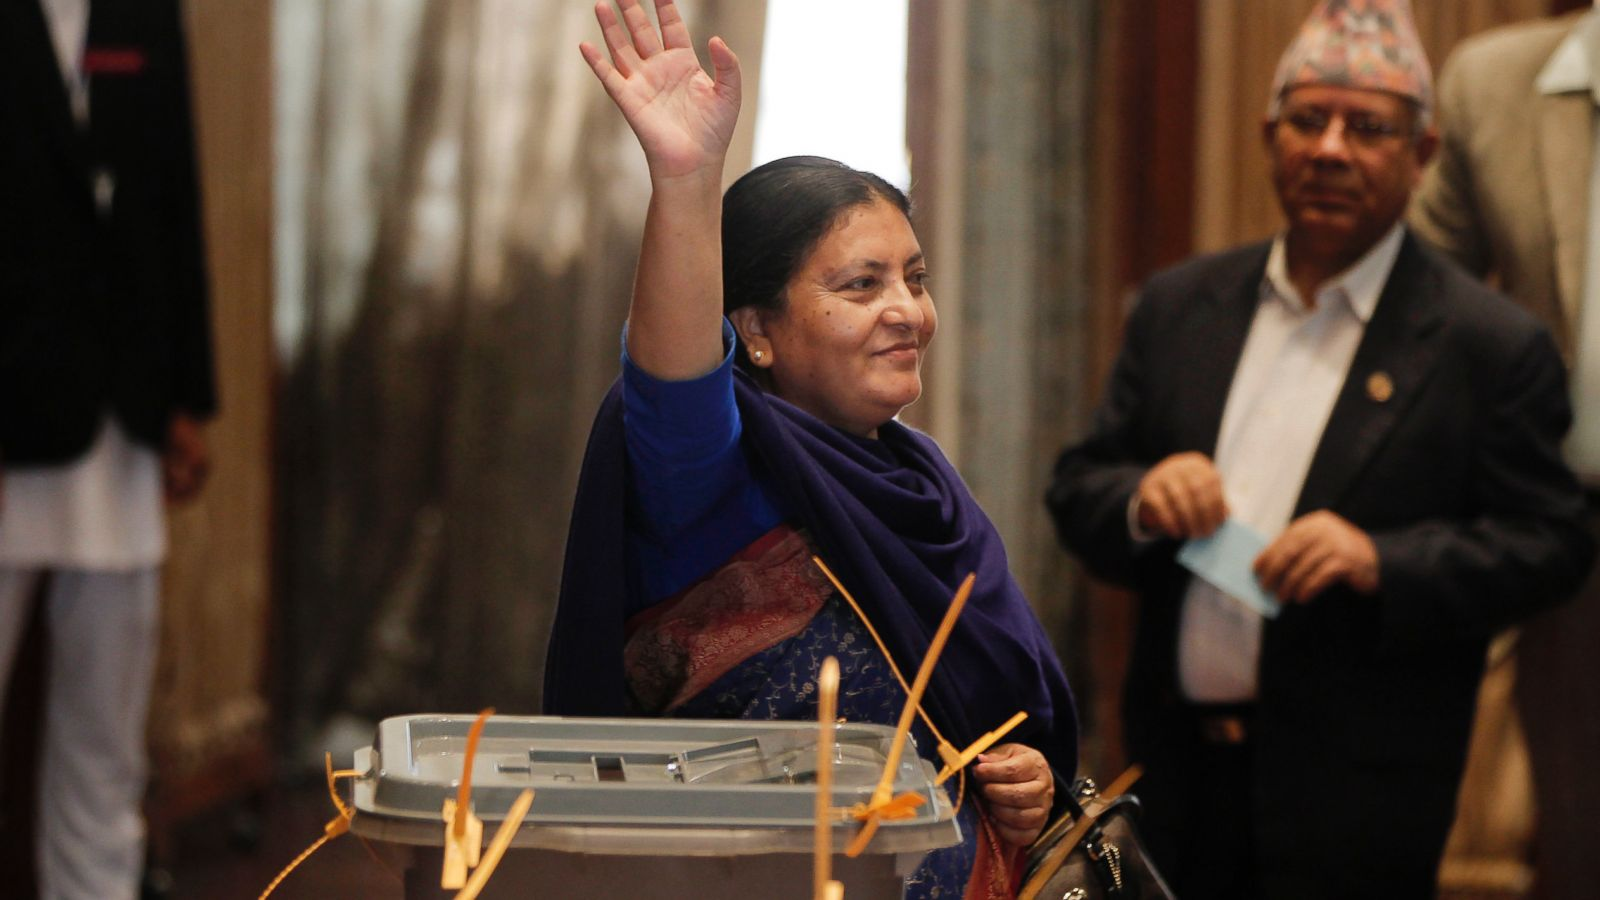 Nepal elects first female president